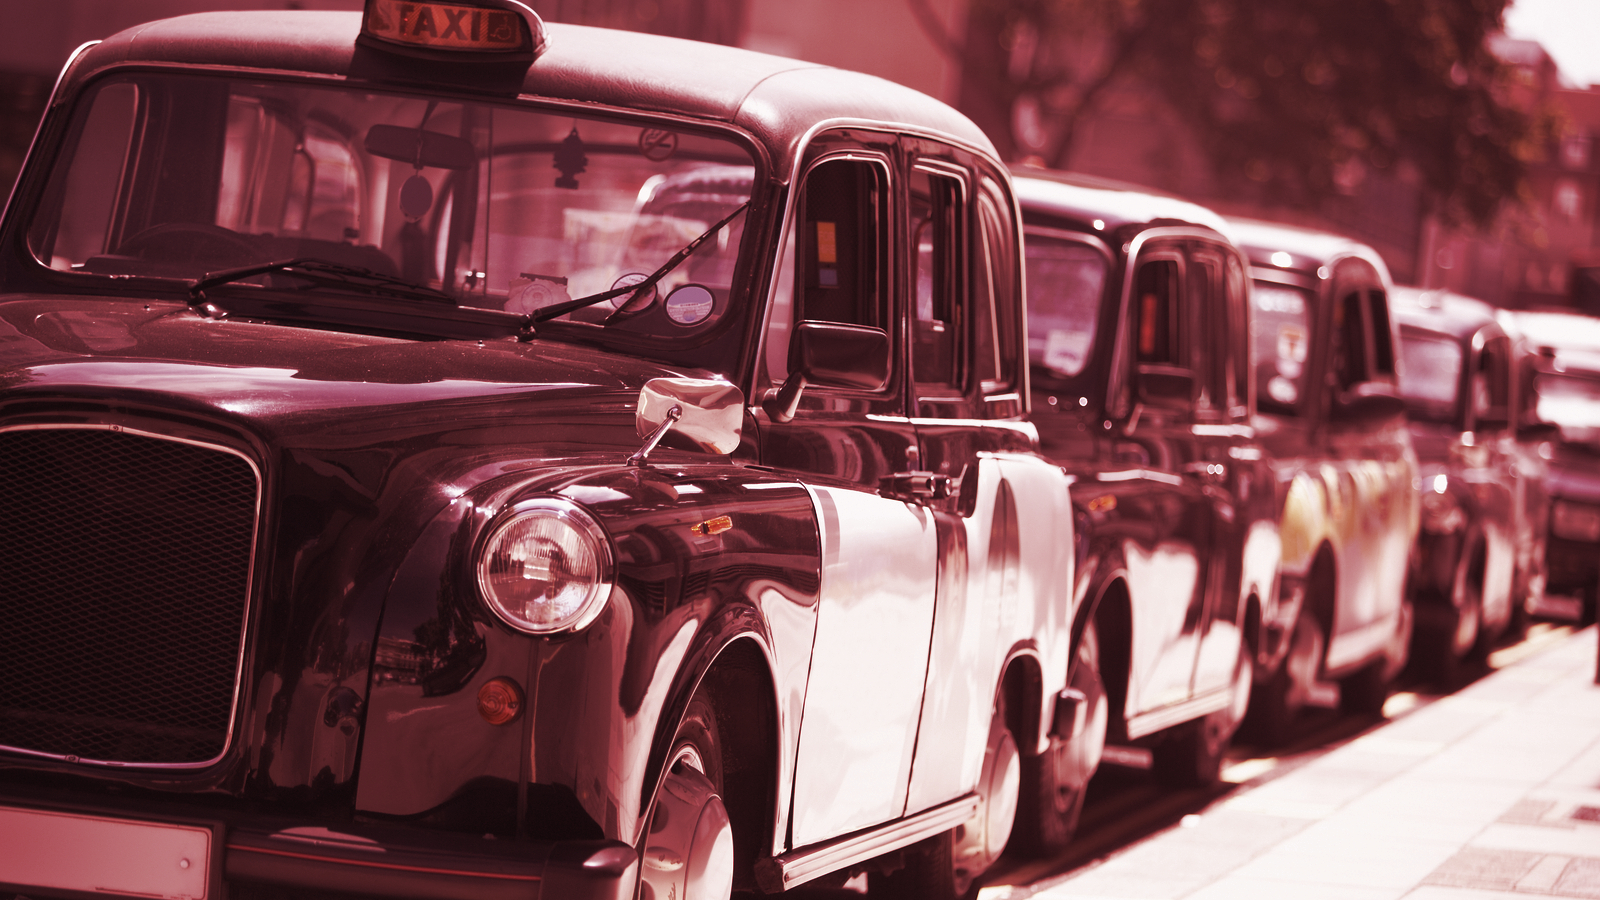 10,000 UK Taxis to Take Crypto Payments on Ethereum - Decrypt